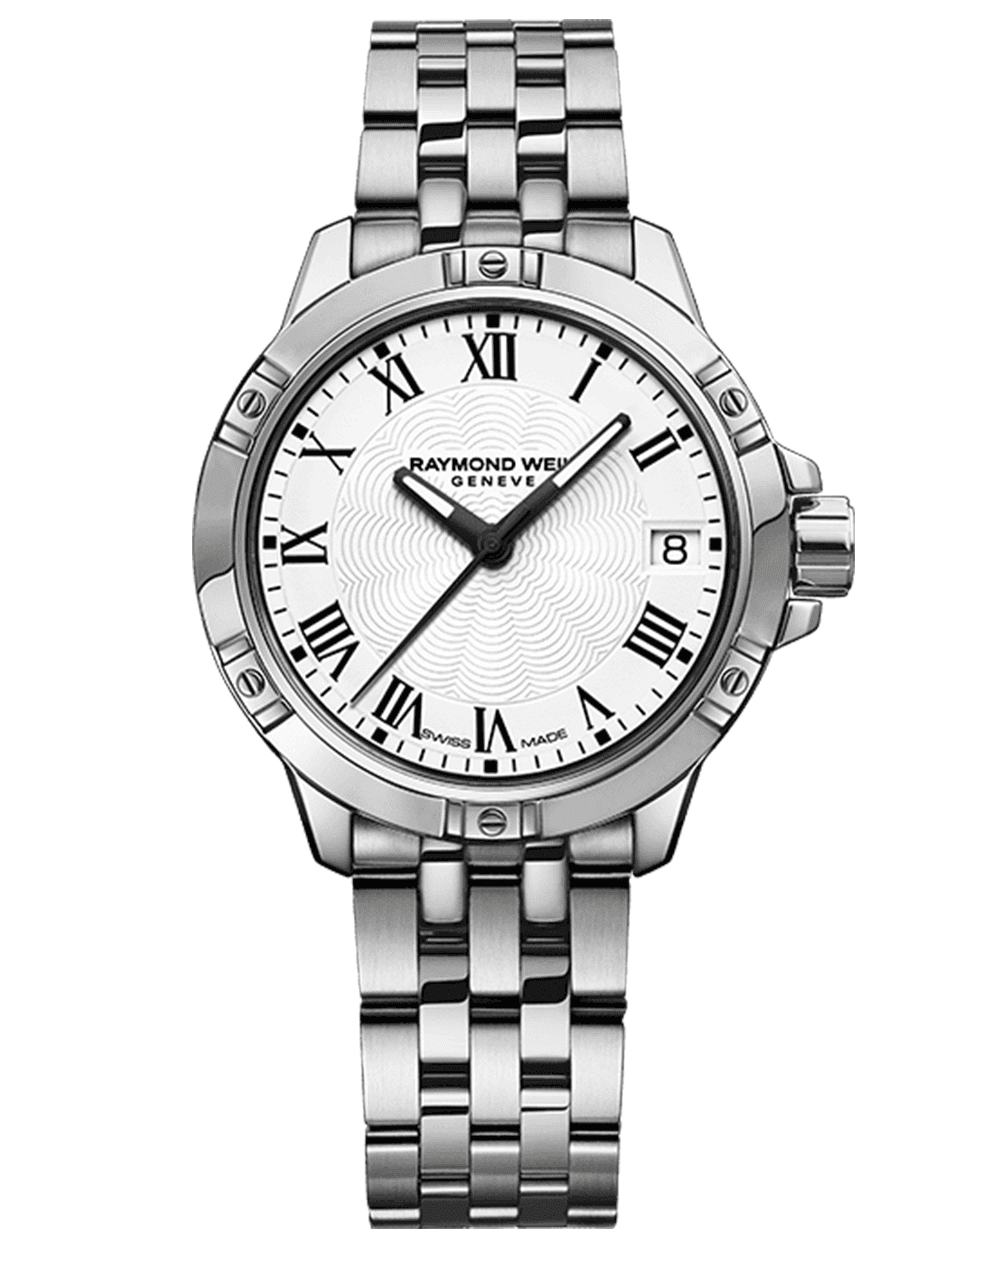 Tango Classic Ladies White Dial Steel Quartz Date Watch, 30mm 5960-ST-00300